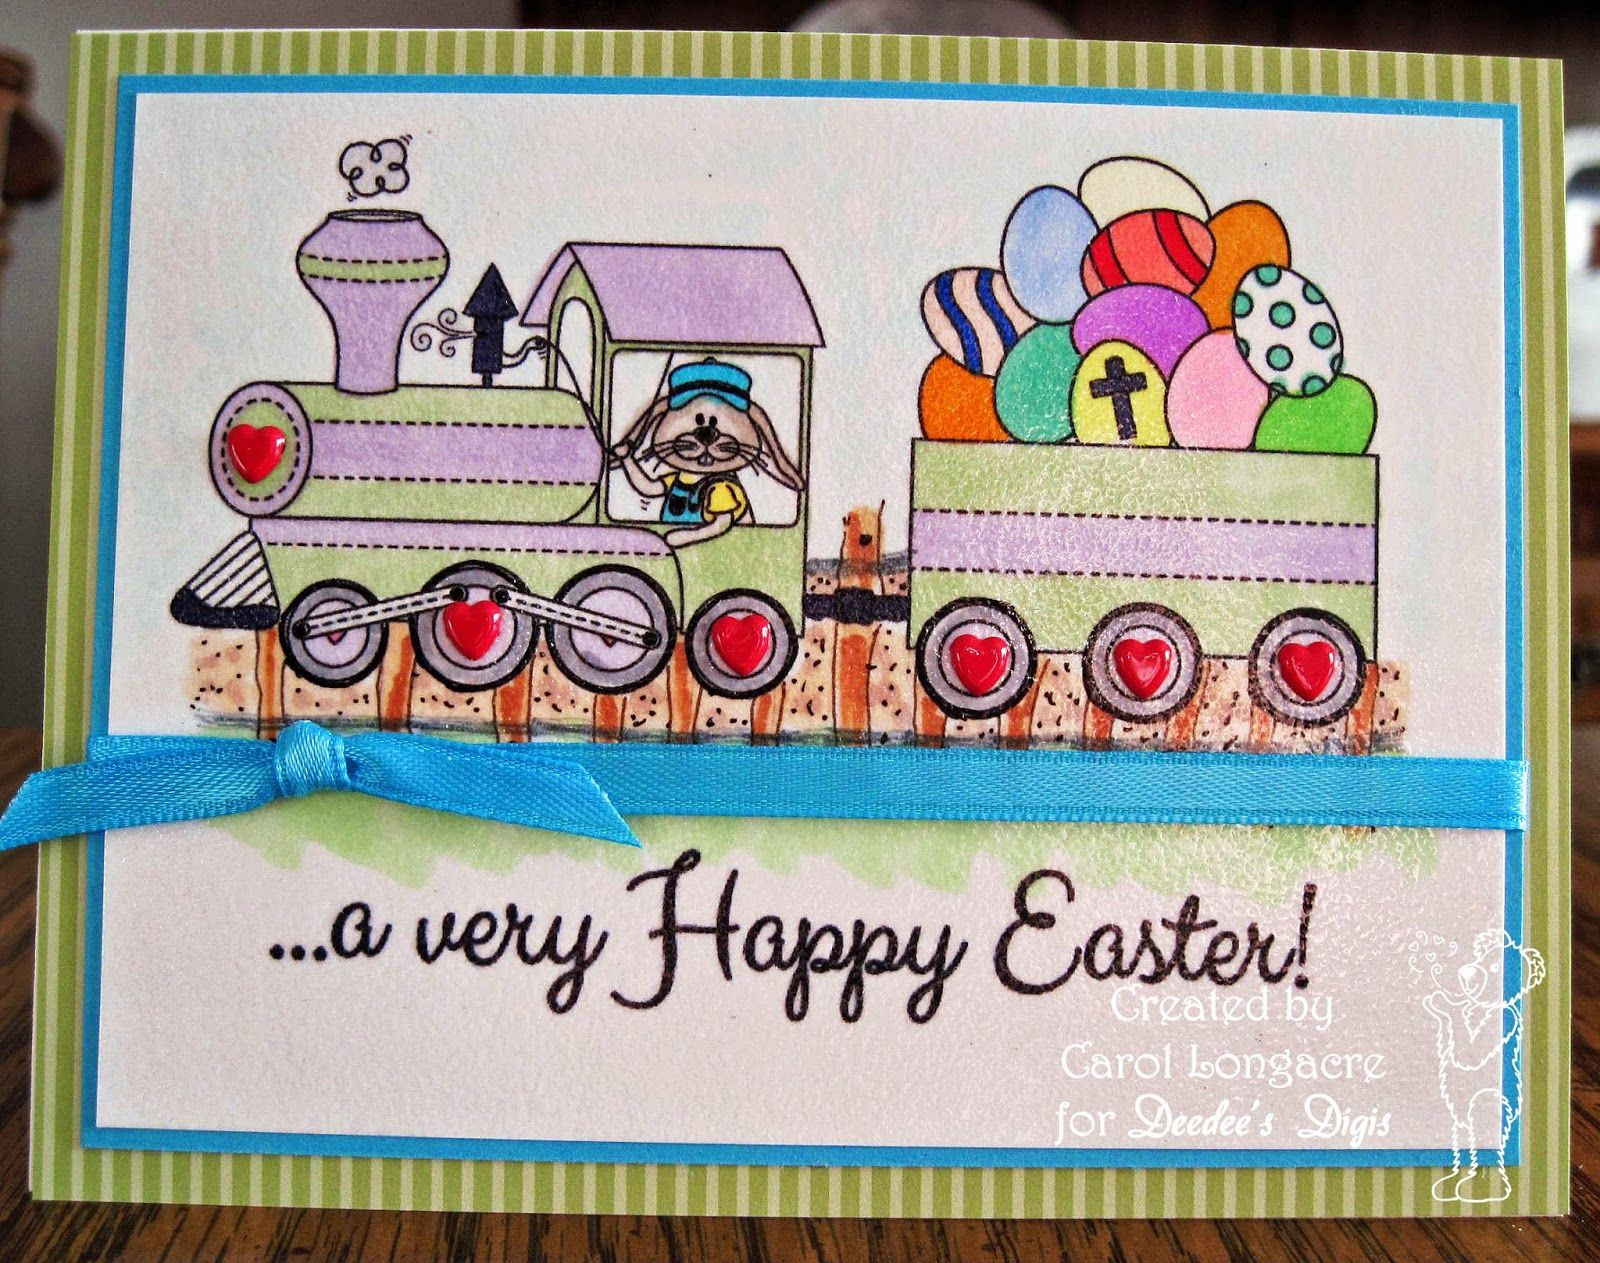 Deedee's digis - Right on Track for Easter